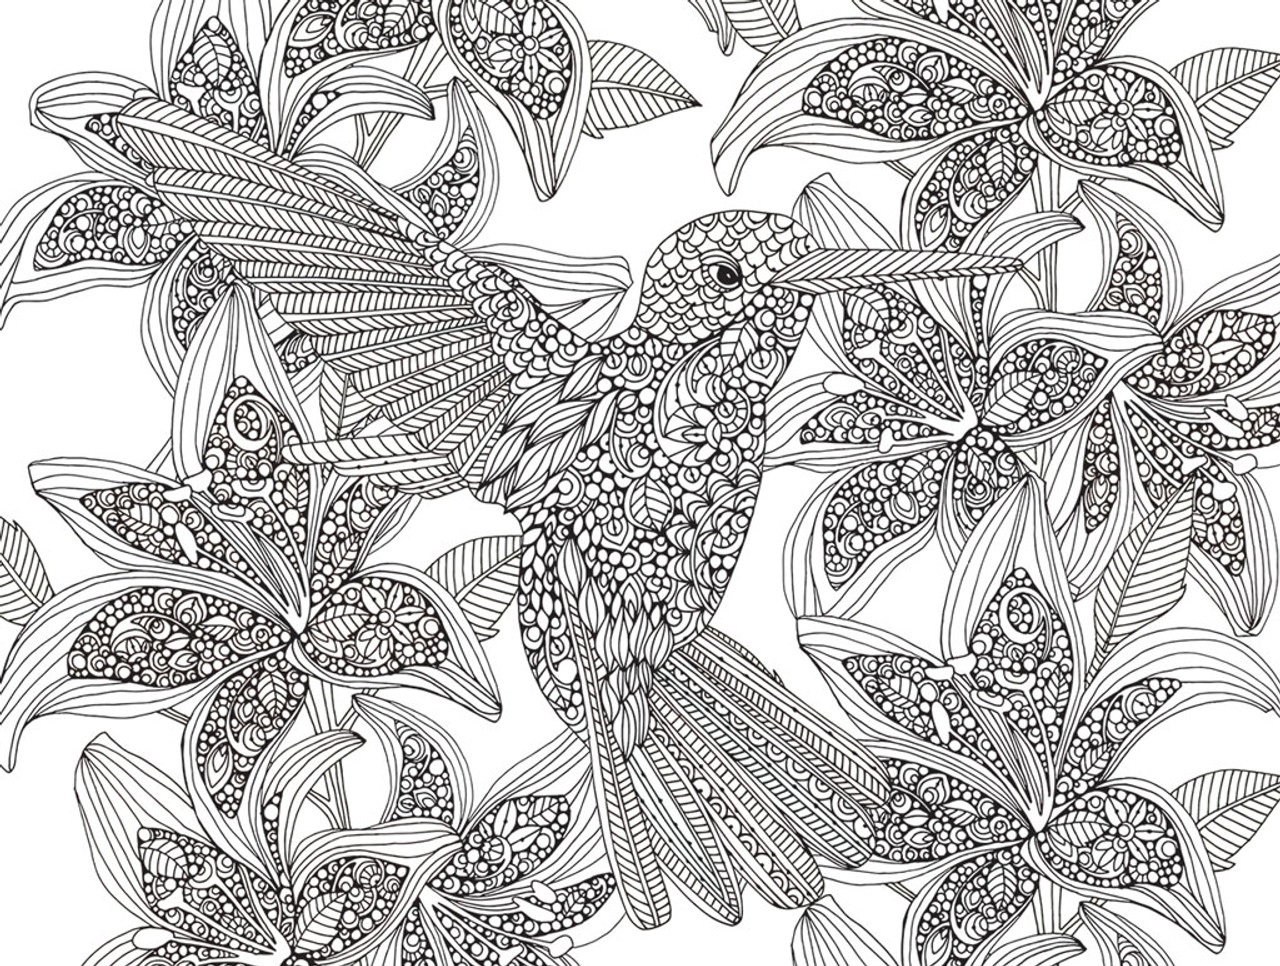 Hummingbirds-2 Sided Coloring Puzzle - 300pc Jigsaw Puzzle By White  Mountain (discon-22796)